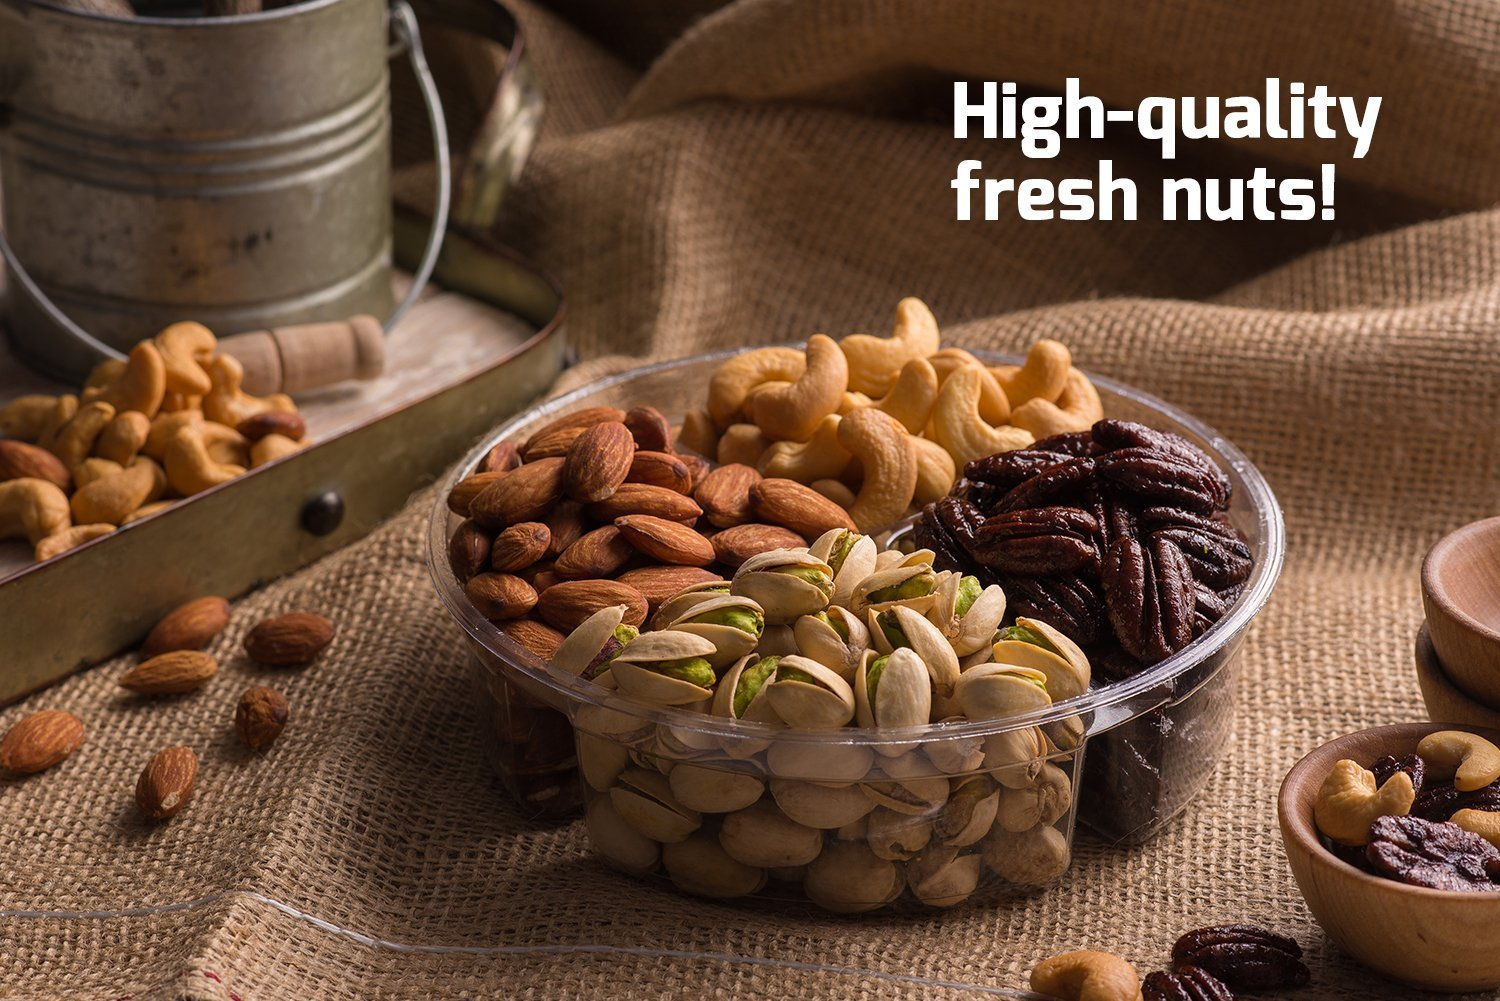 Mother's Day Nuts Gift Basket | Medium 4-Sectional Delicious Variety Mixed Nuts Prime Gift | Healthy Fresh Gift Idea For Christmas, Thanksgiving, Mothers & Fathers Day, And Birthday by Nut Cravings (Image #4)